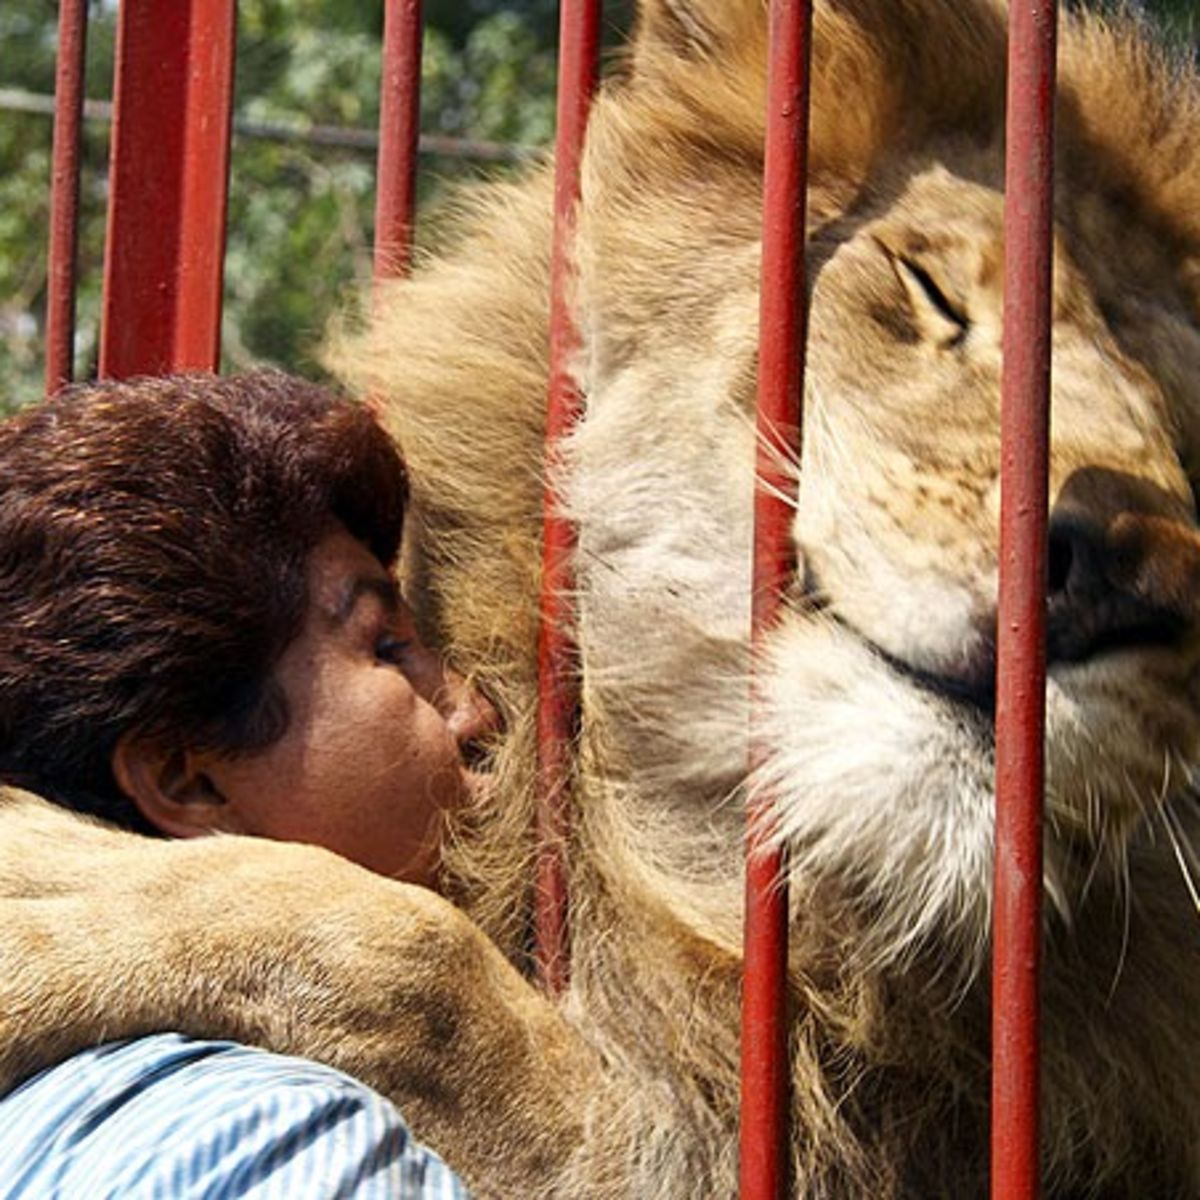 Huge lion hugs woman through bars